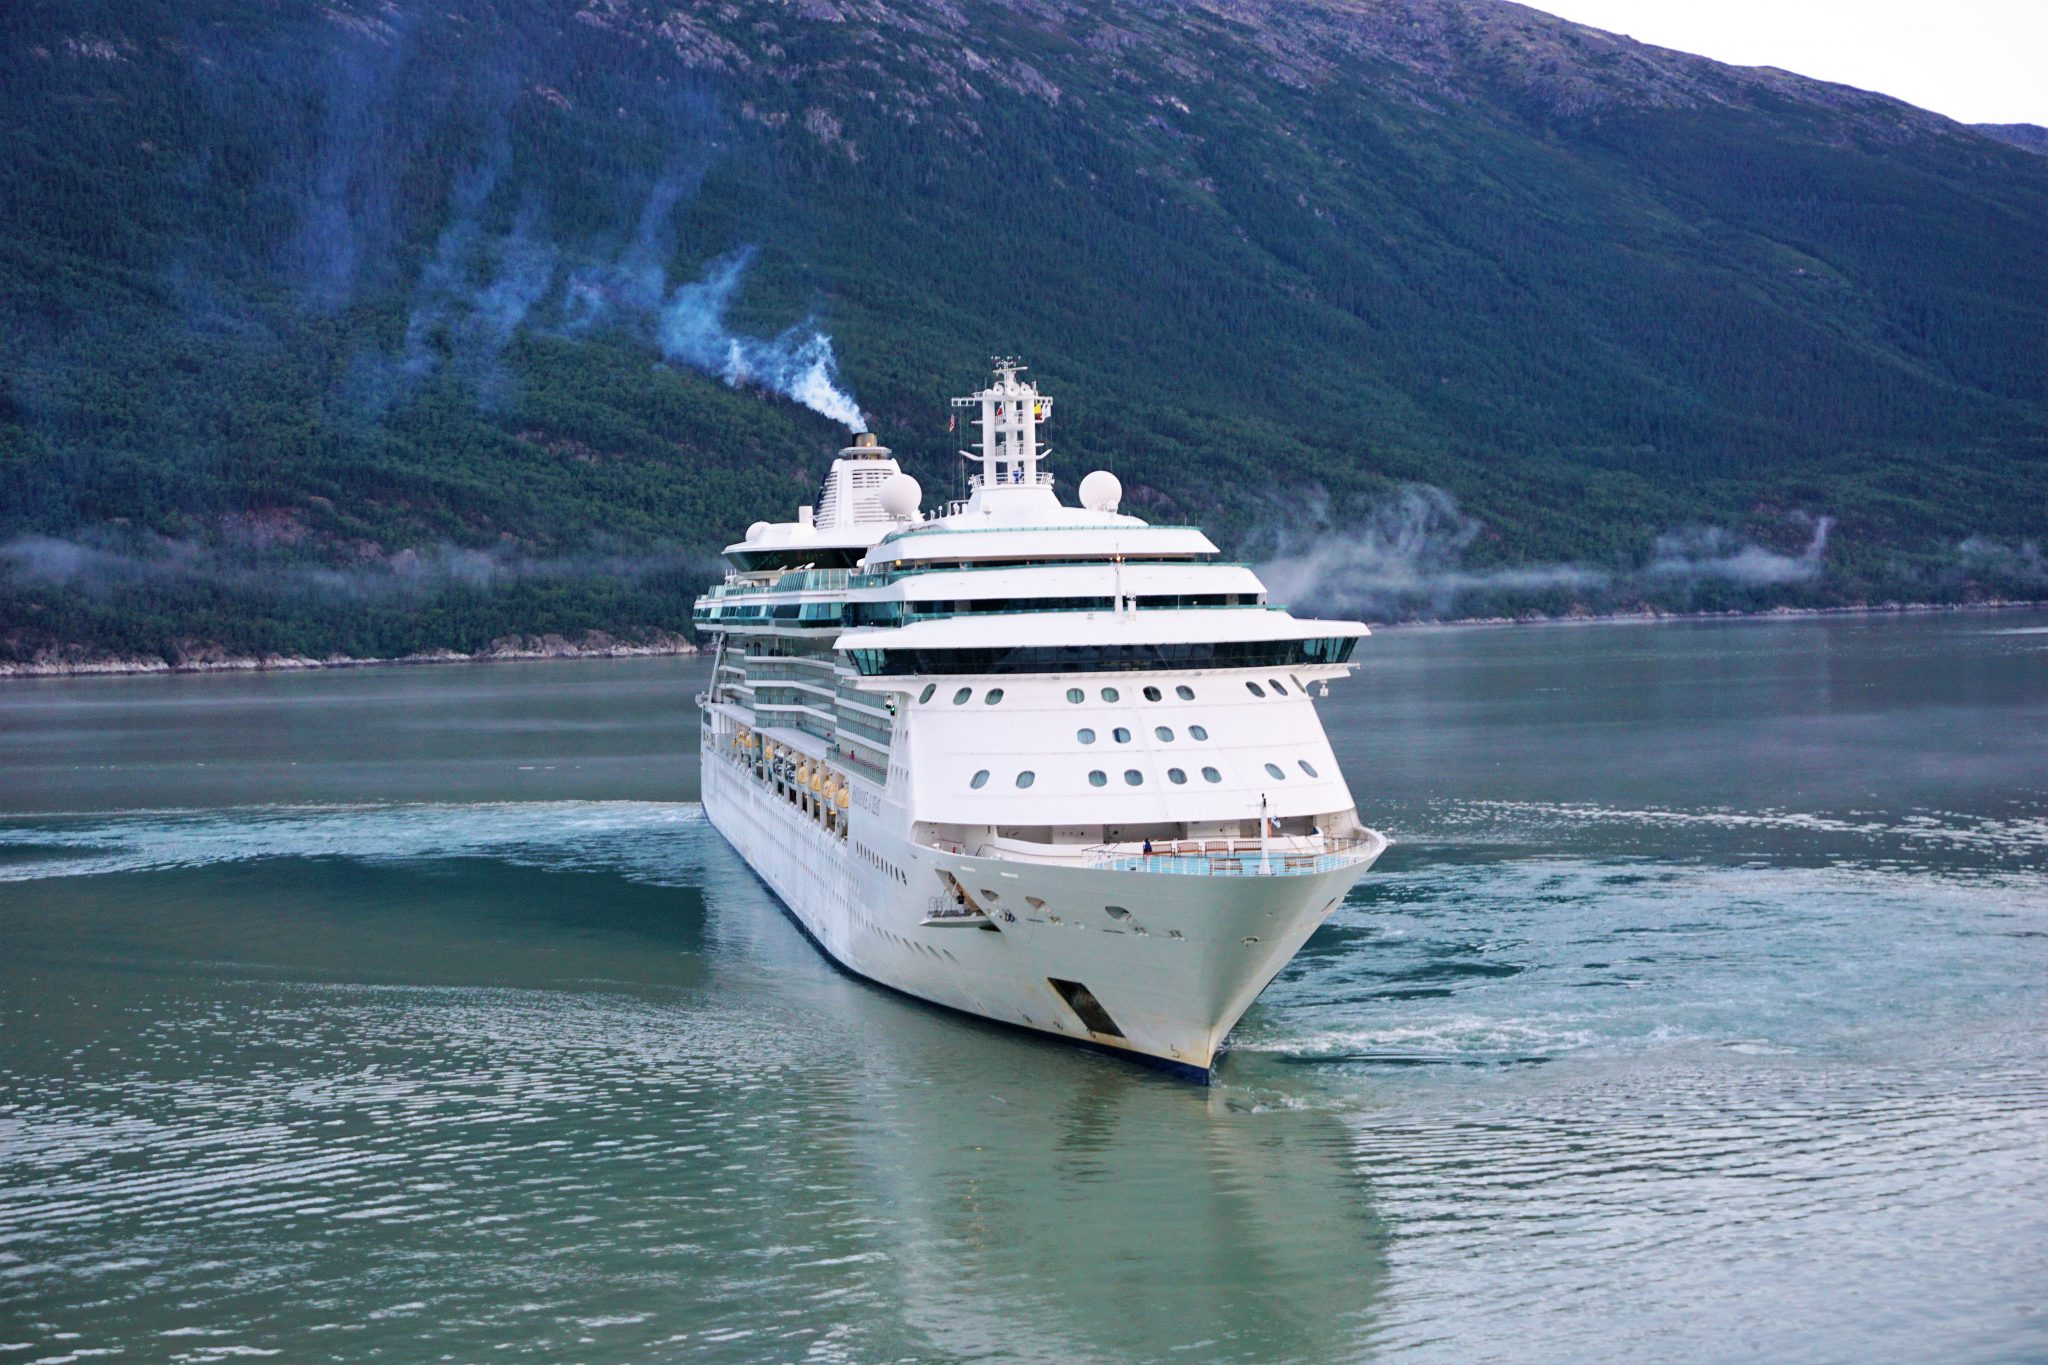 10 Items You Are Not Allowed to Bring on a Cruise